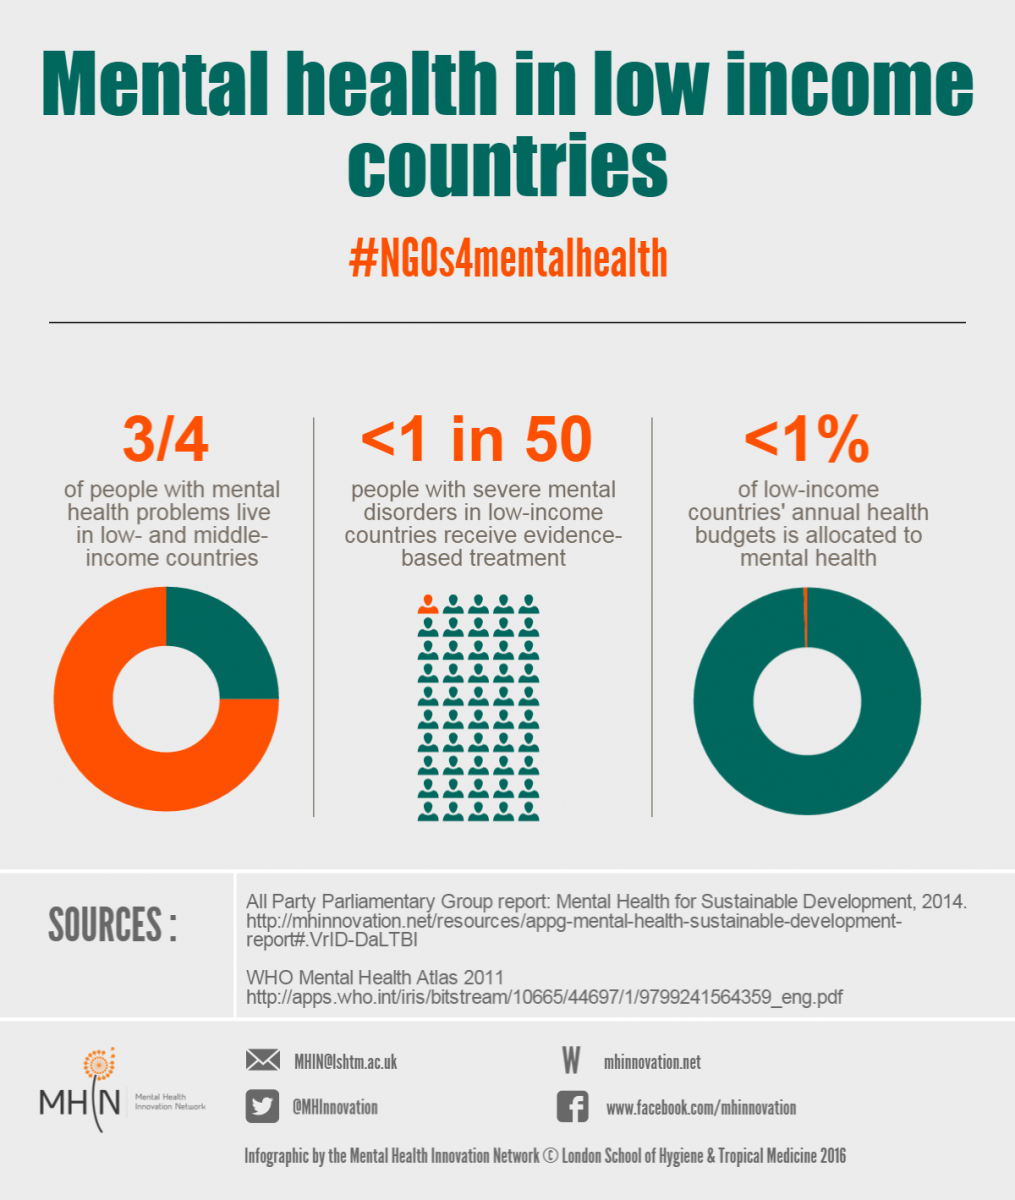 Mental disorders contribute to 14% of global burden of disease https://t.co/f0MA1khJ71 #NGOs4MentalHealth https://t.co/nMjK0yoZly